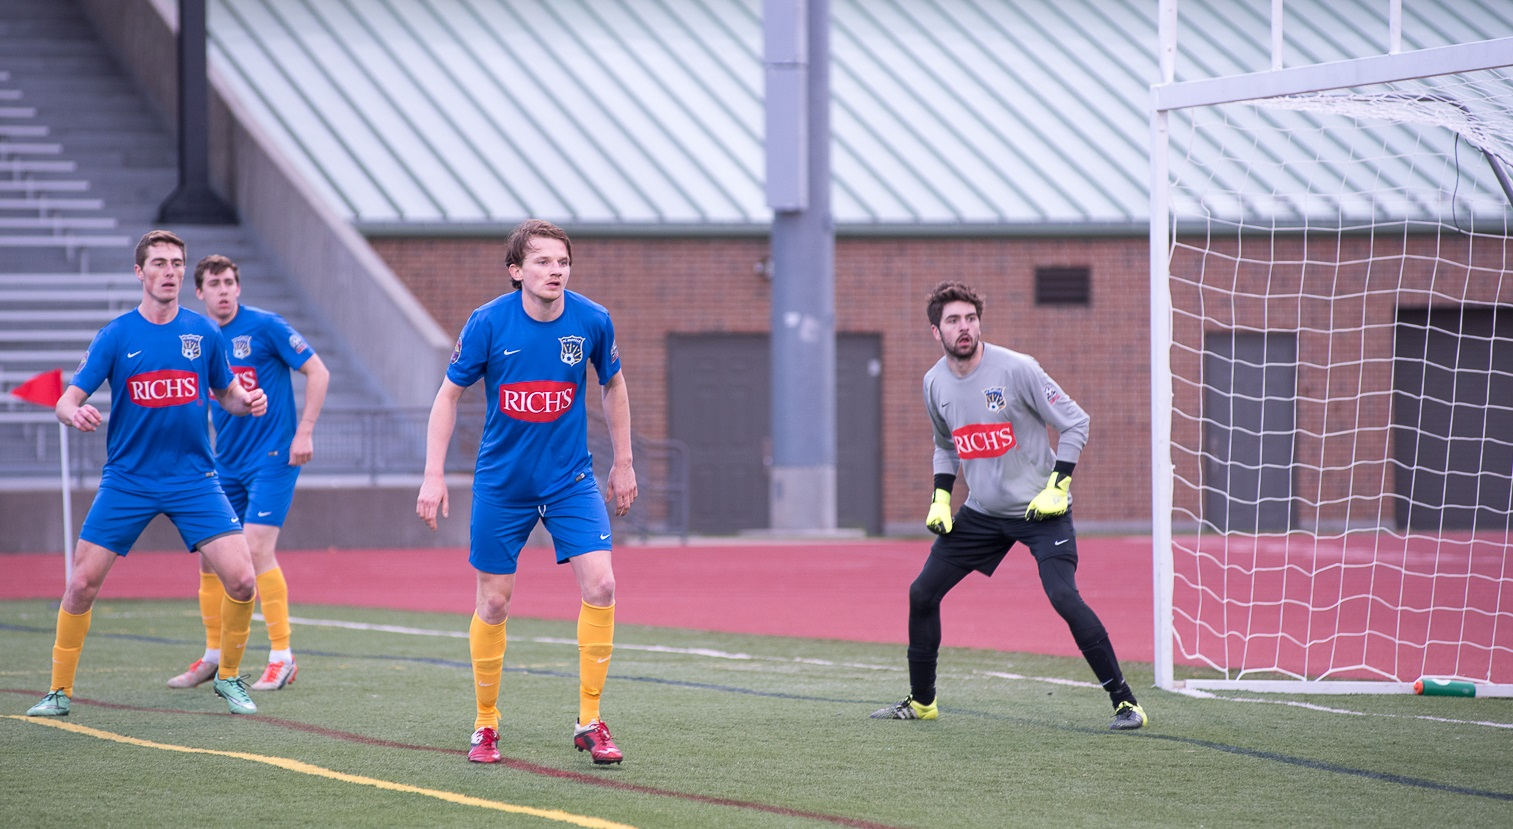 FC Buffalo must recover from two straight losses in a rivalry match against Erie. (Matt Weinberg/Special to The News)